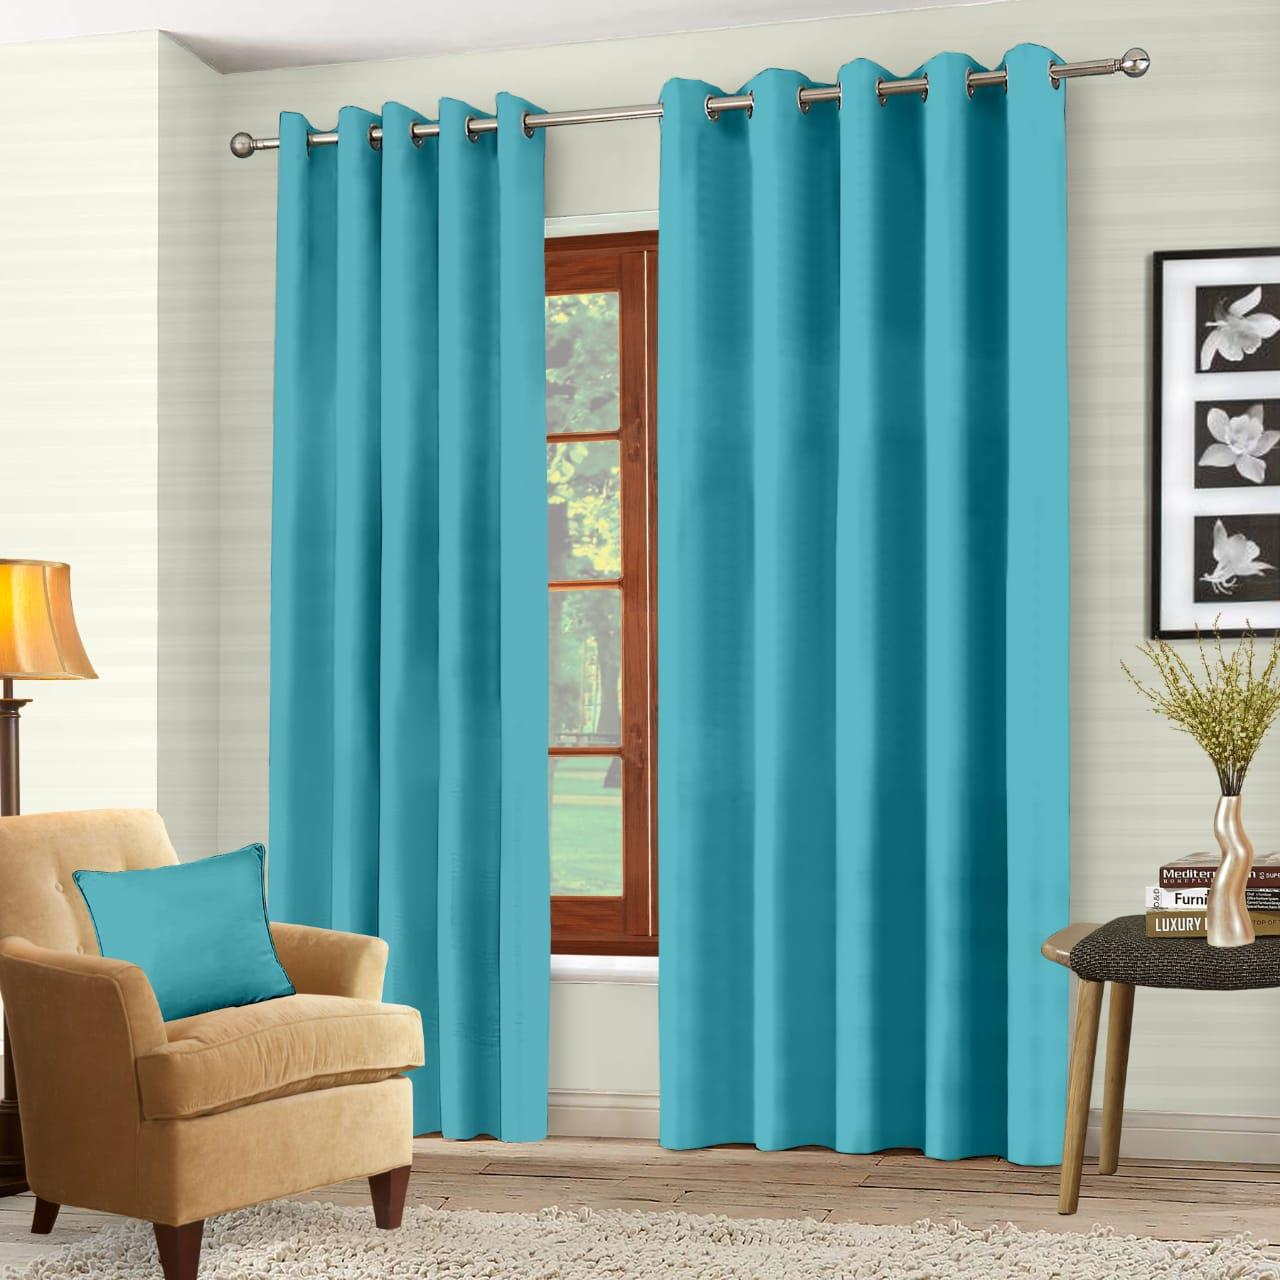 Luxury-Thermal-Blackout-Eyelet-Ring-Top-Curtains-Pair-with-tie-backs thumbnail 60